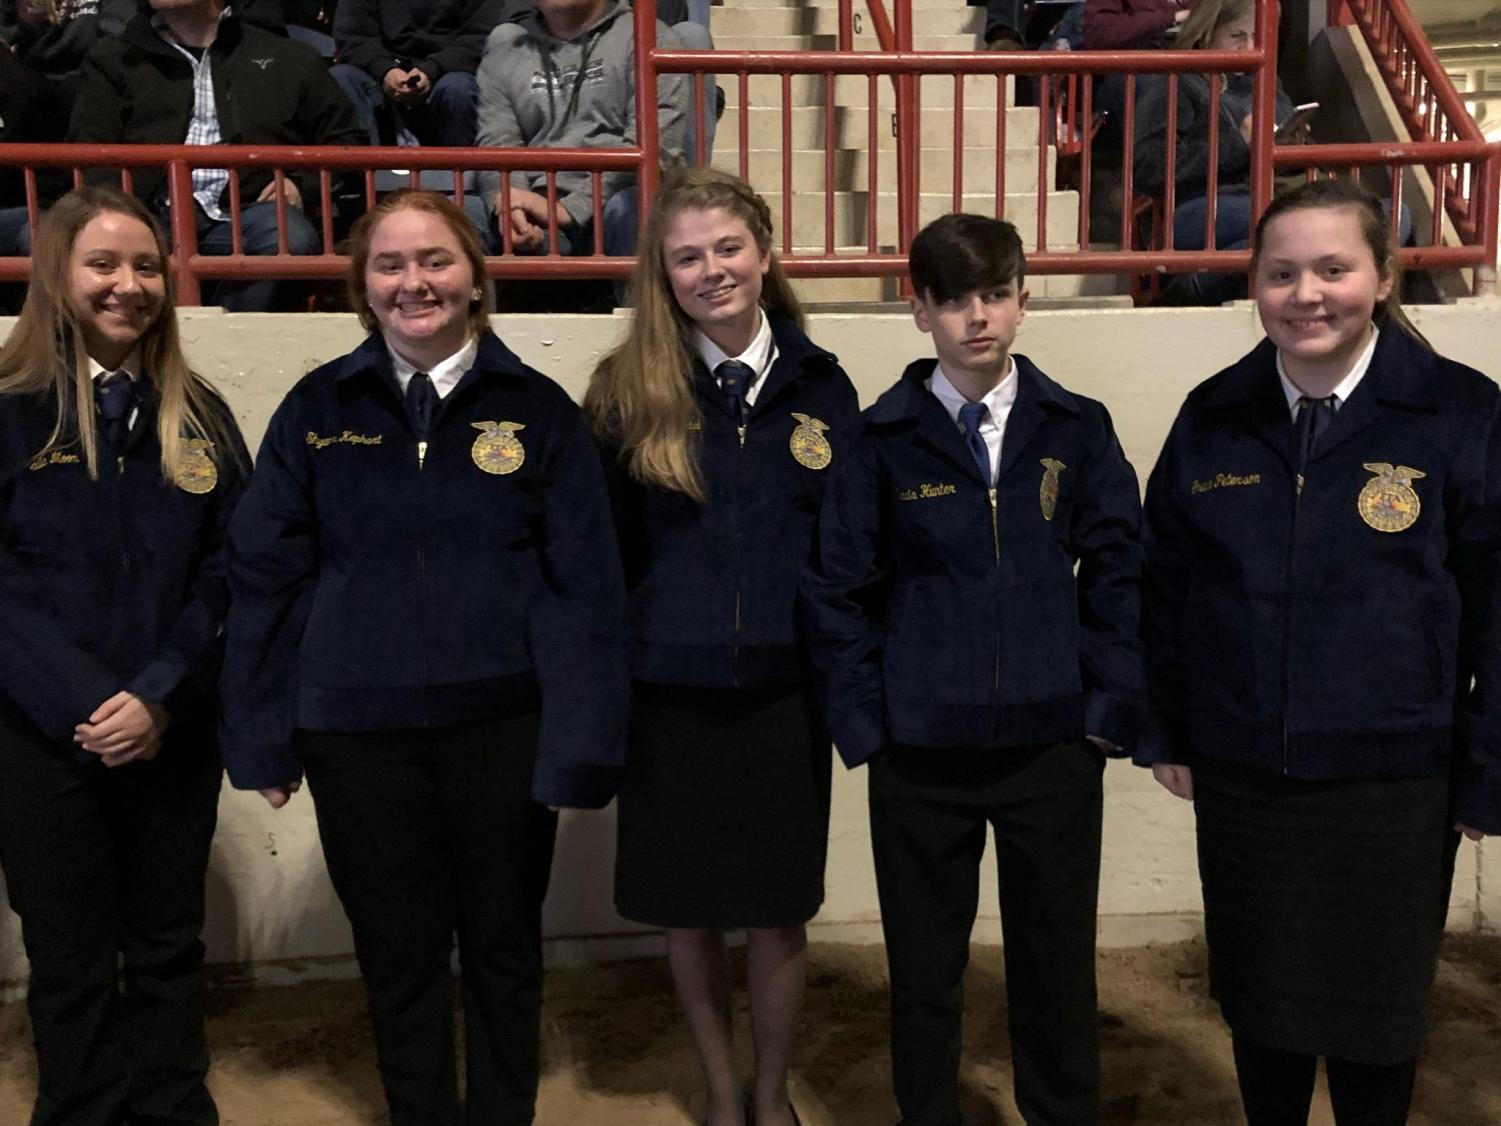 All five of the recipients to receive their FFA jackets.